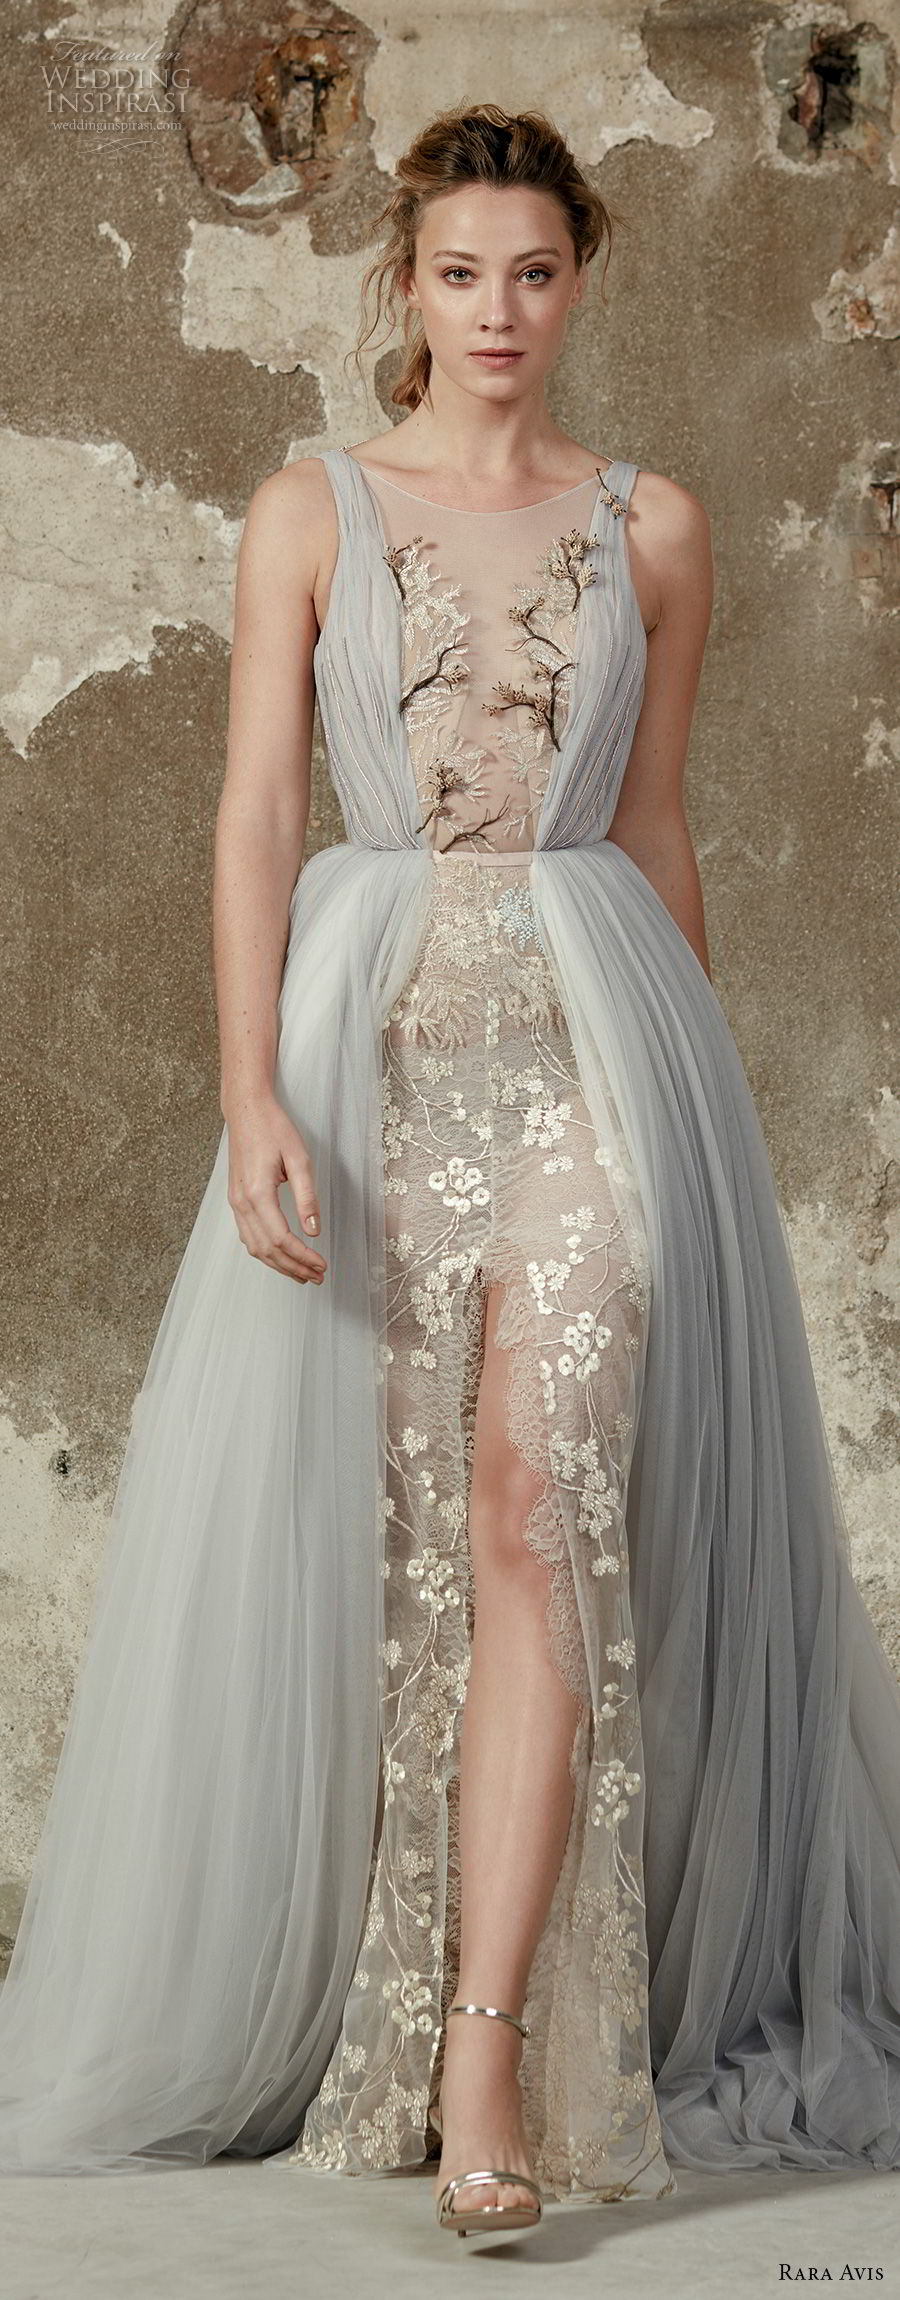 rara avis 2017 bridal sleeveless illusion bateau neck full embellishment middle slit skirt romantic pastel blue a line wedding dress open square back medium train (10) mv